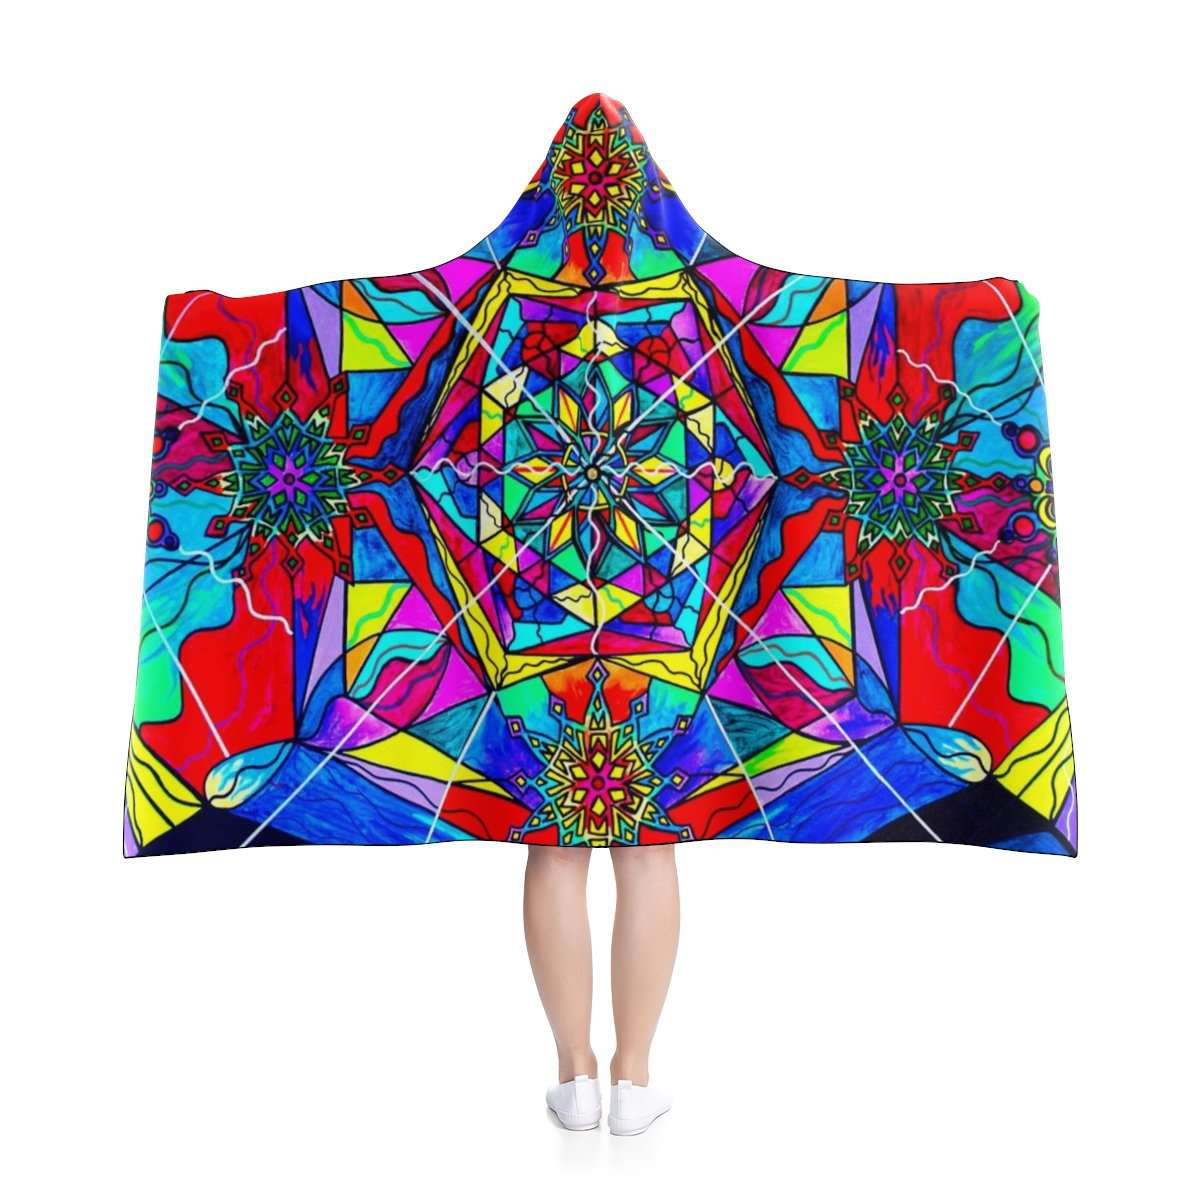 Gratitude - Hooded Blanket